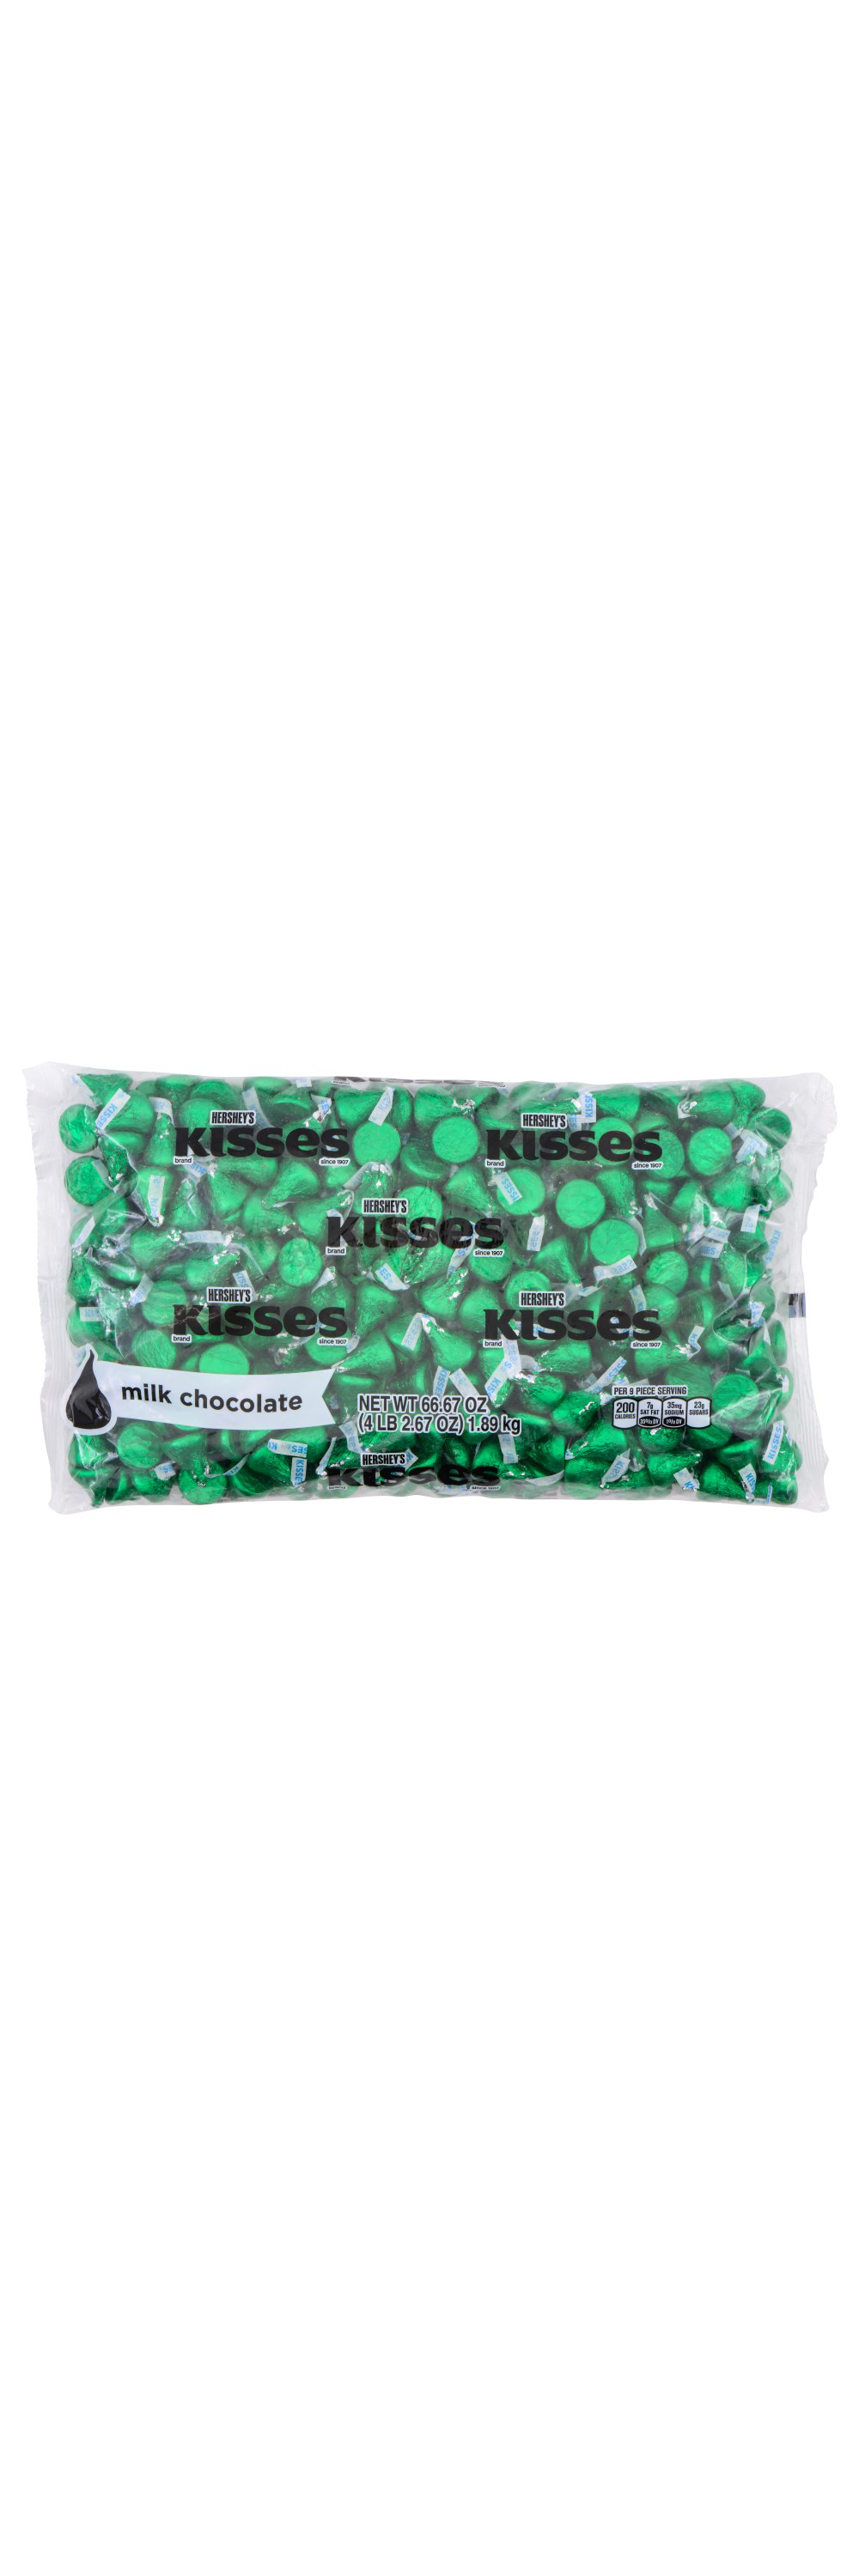 HERSHEY'S KISSES Dark Green Foil Milk Chocolate Candy, 66.67 oz bag, 400 pieces - Front of Package